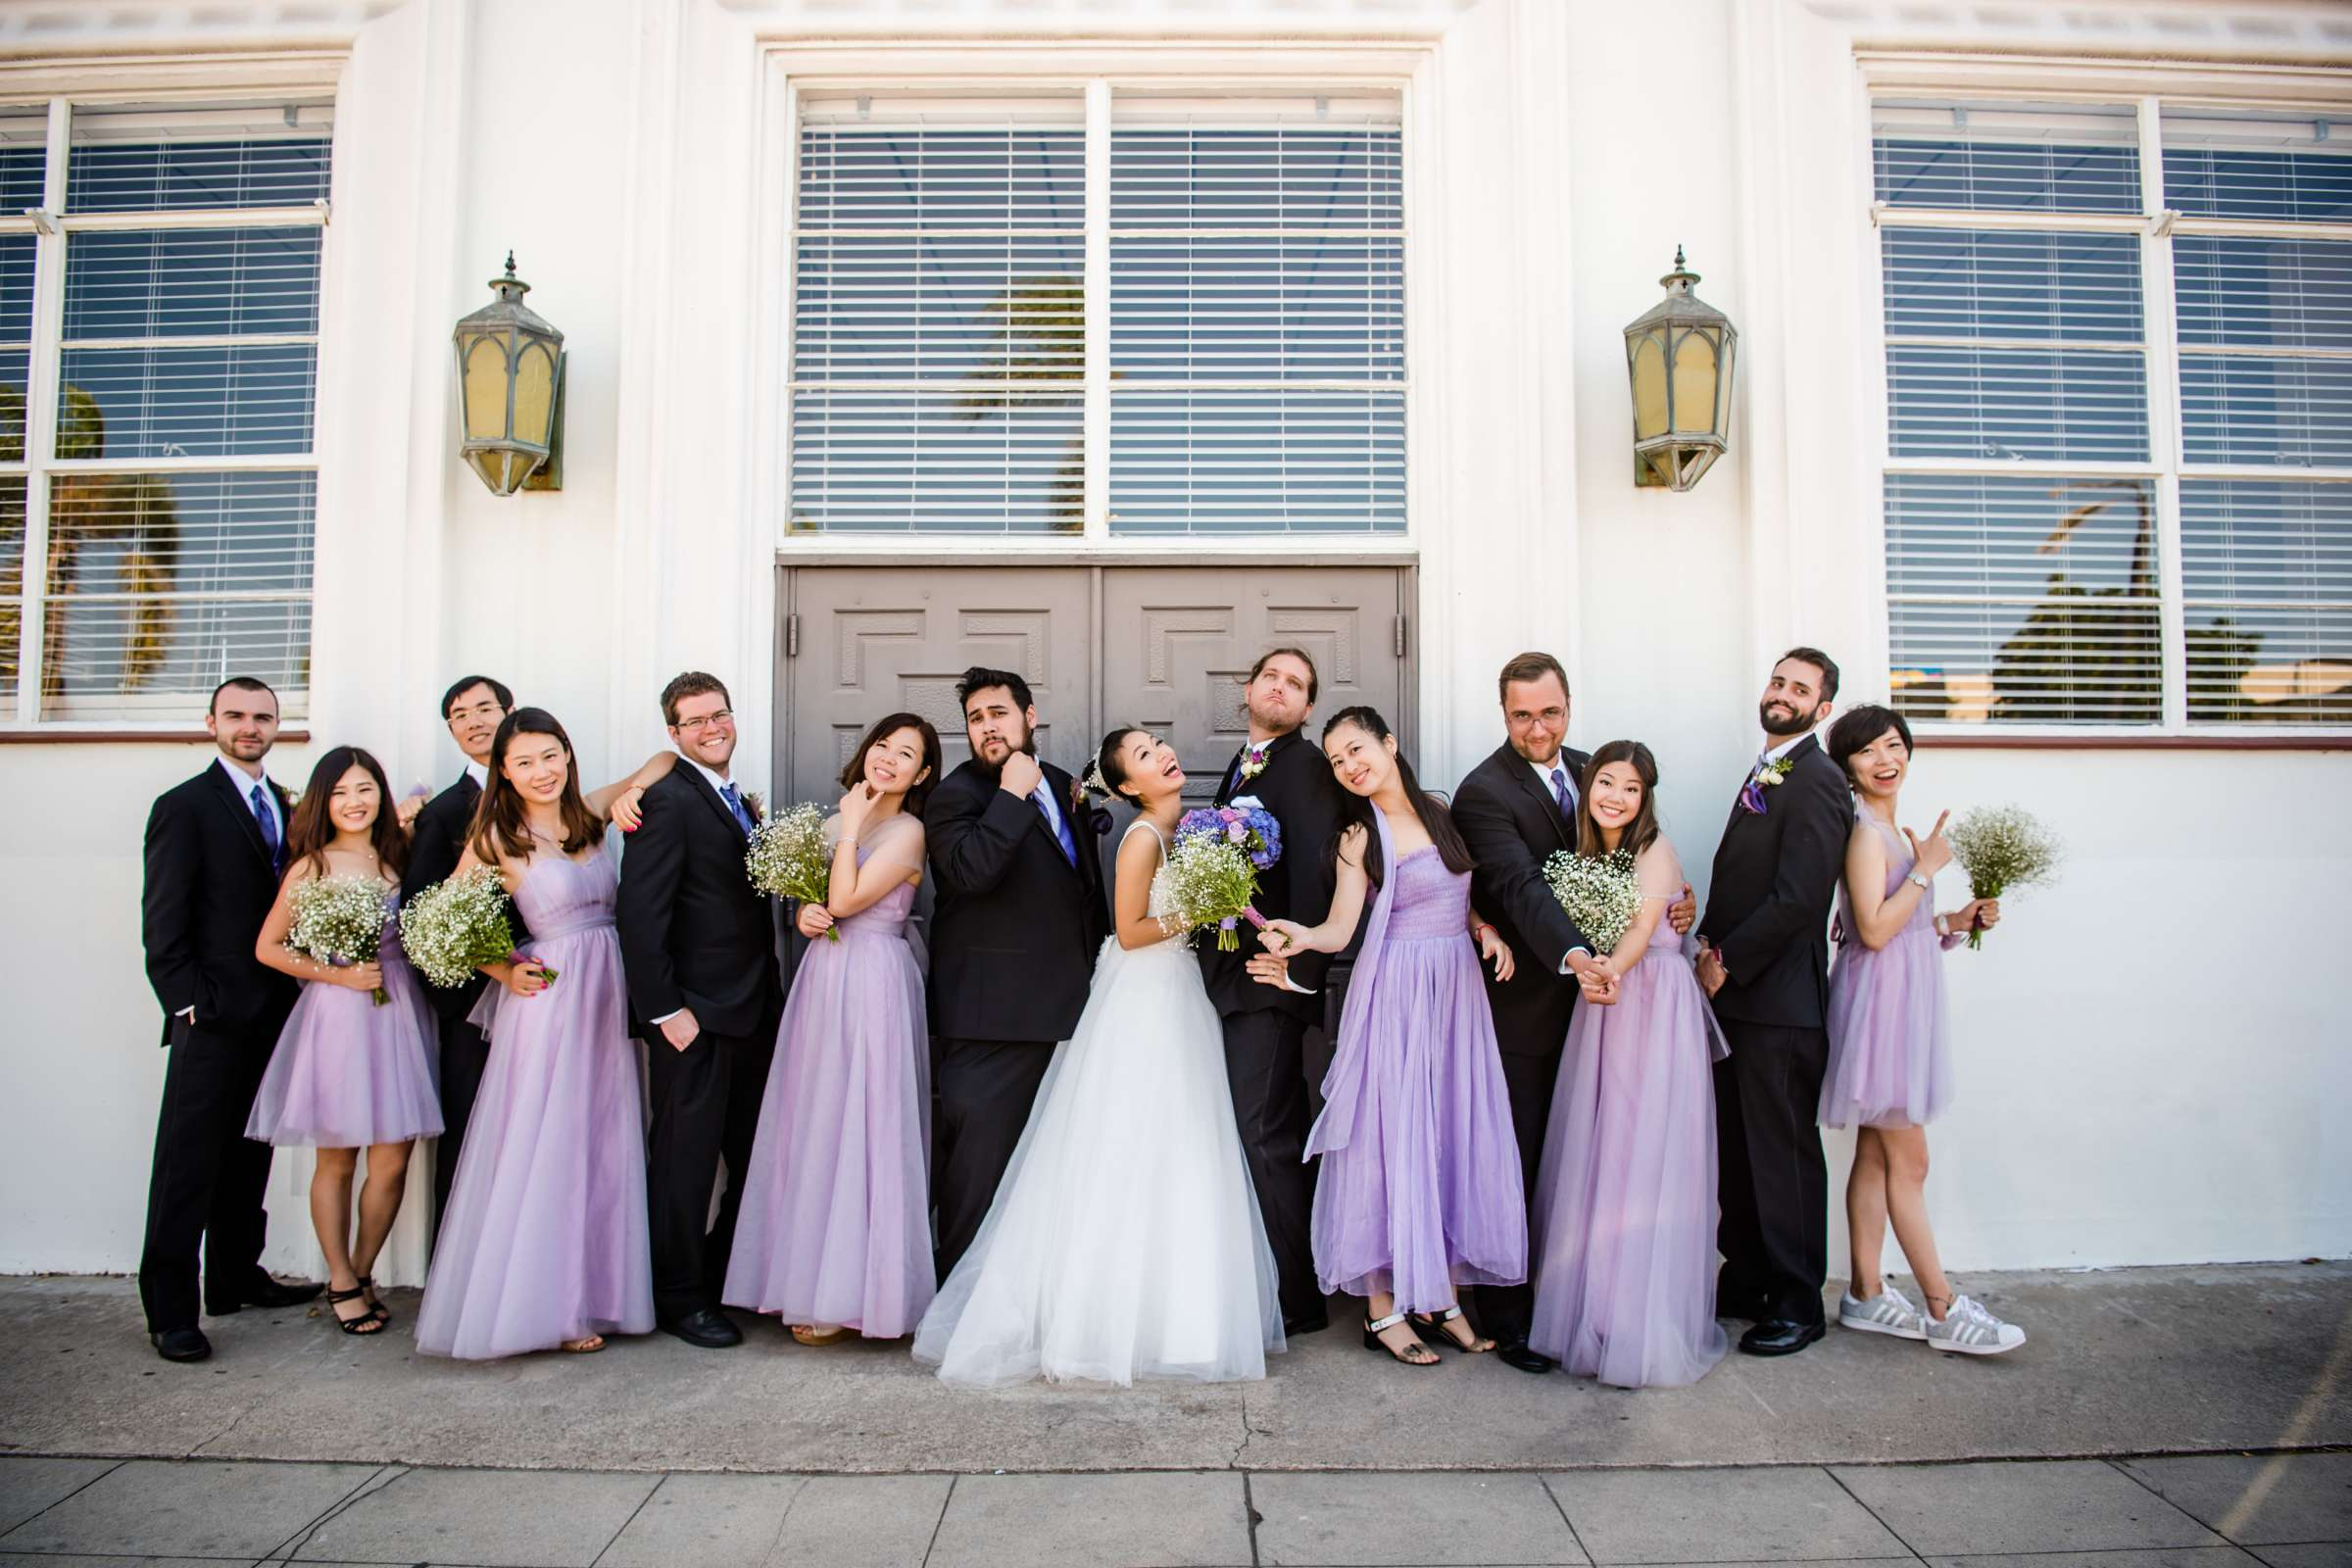 Tom Hams Lighthouse Wedding, Mei and Brendan Wedding Photo #275564 by True Photography